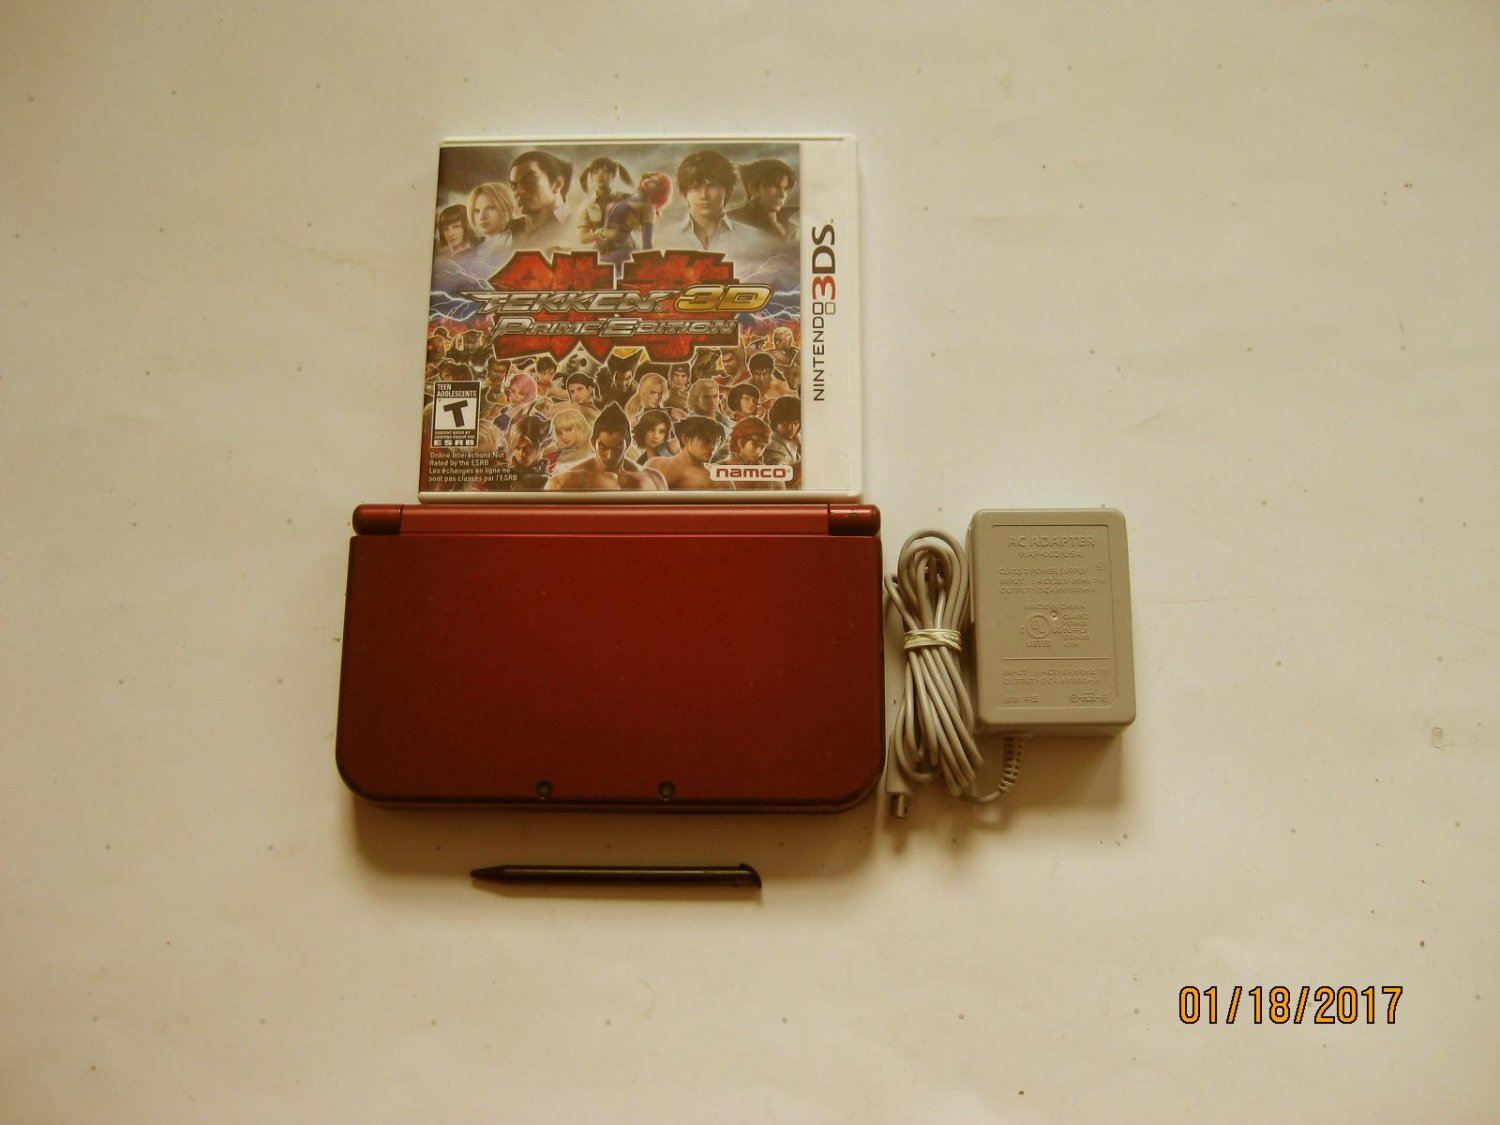 Nintendo New 3DS XL Red 9.0 Firmware version  w Tekken 3d  & More !!